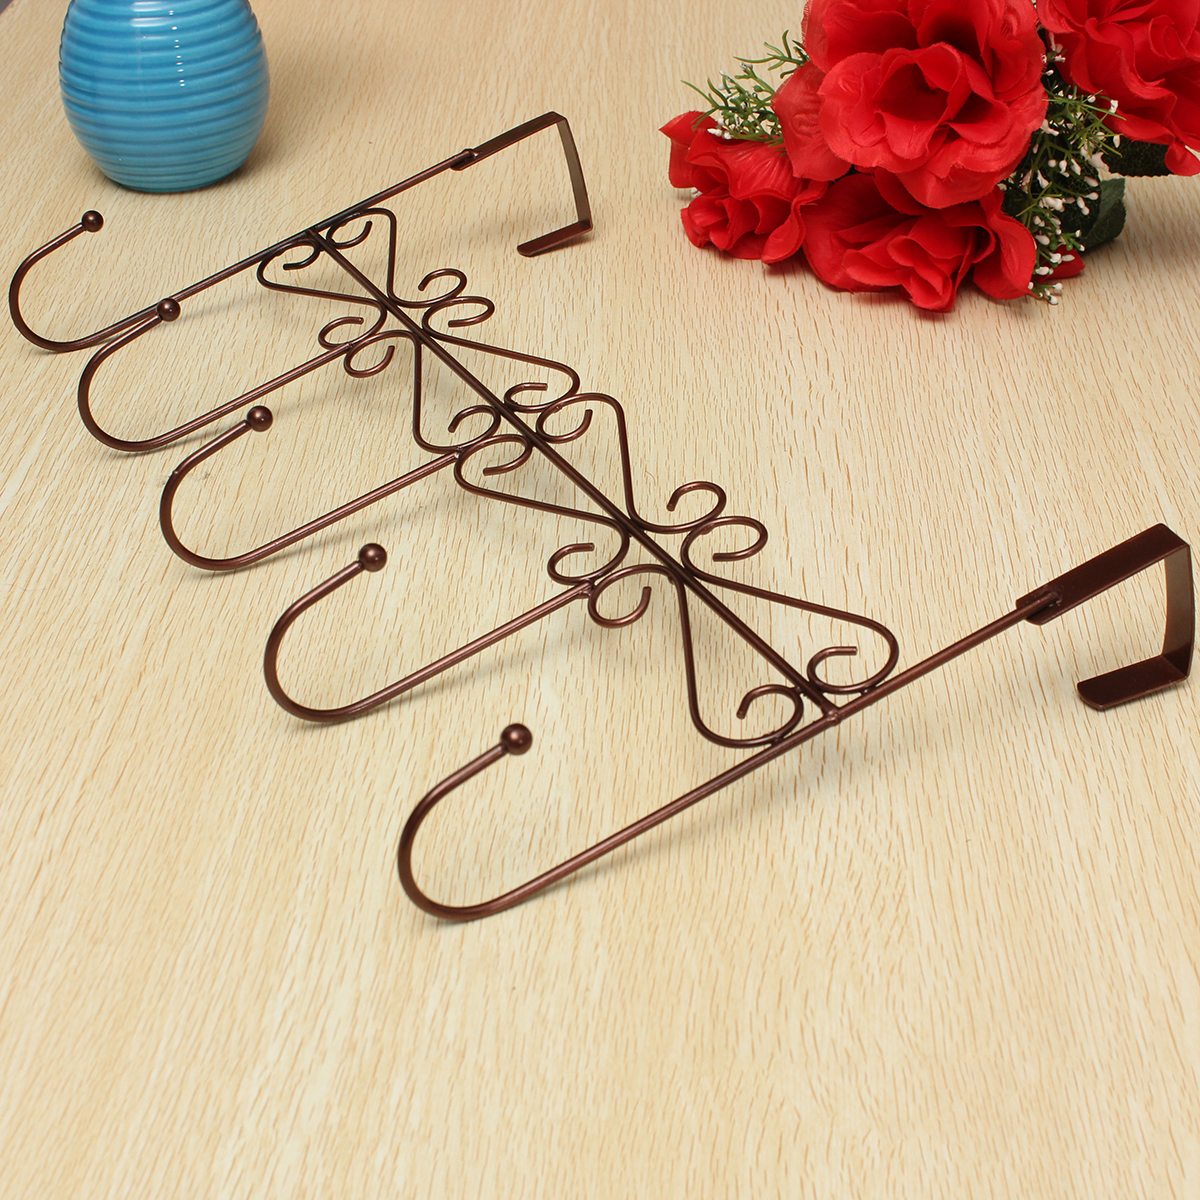 Vintage 5 Hooks Bathroom Coat Clothes Hat Bag Towel Hanger Door Hanging Rack Holder